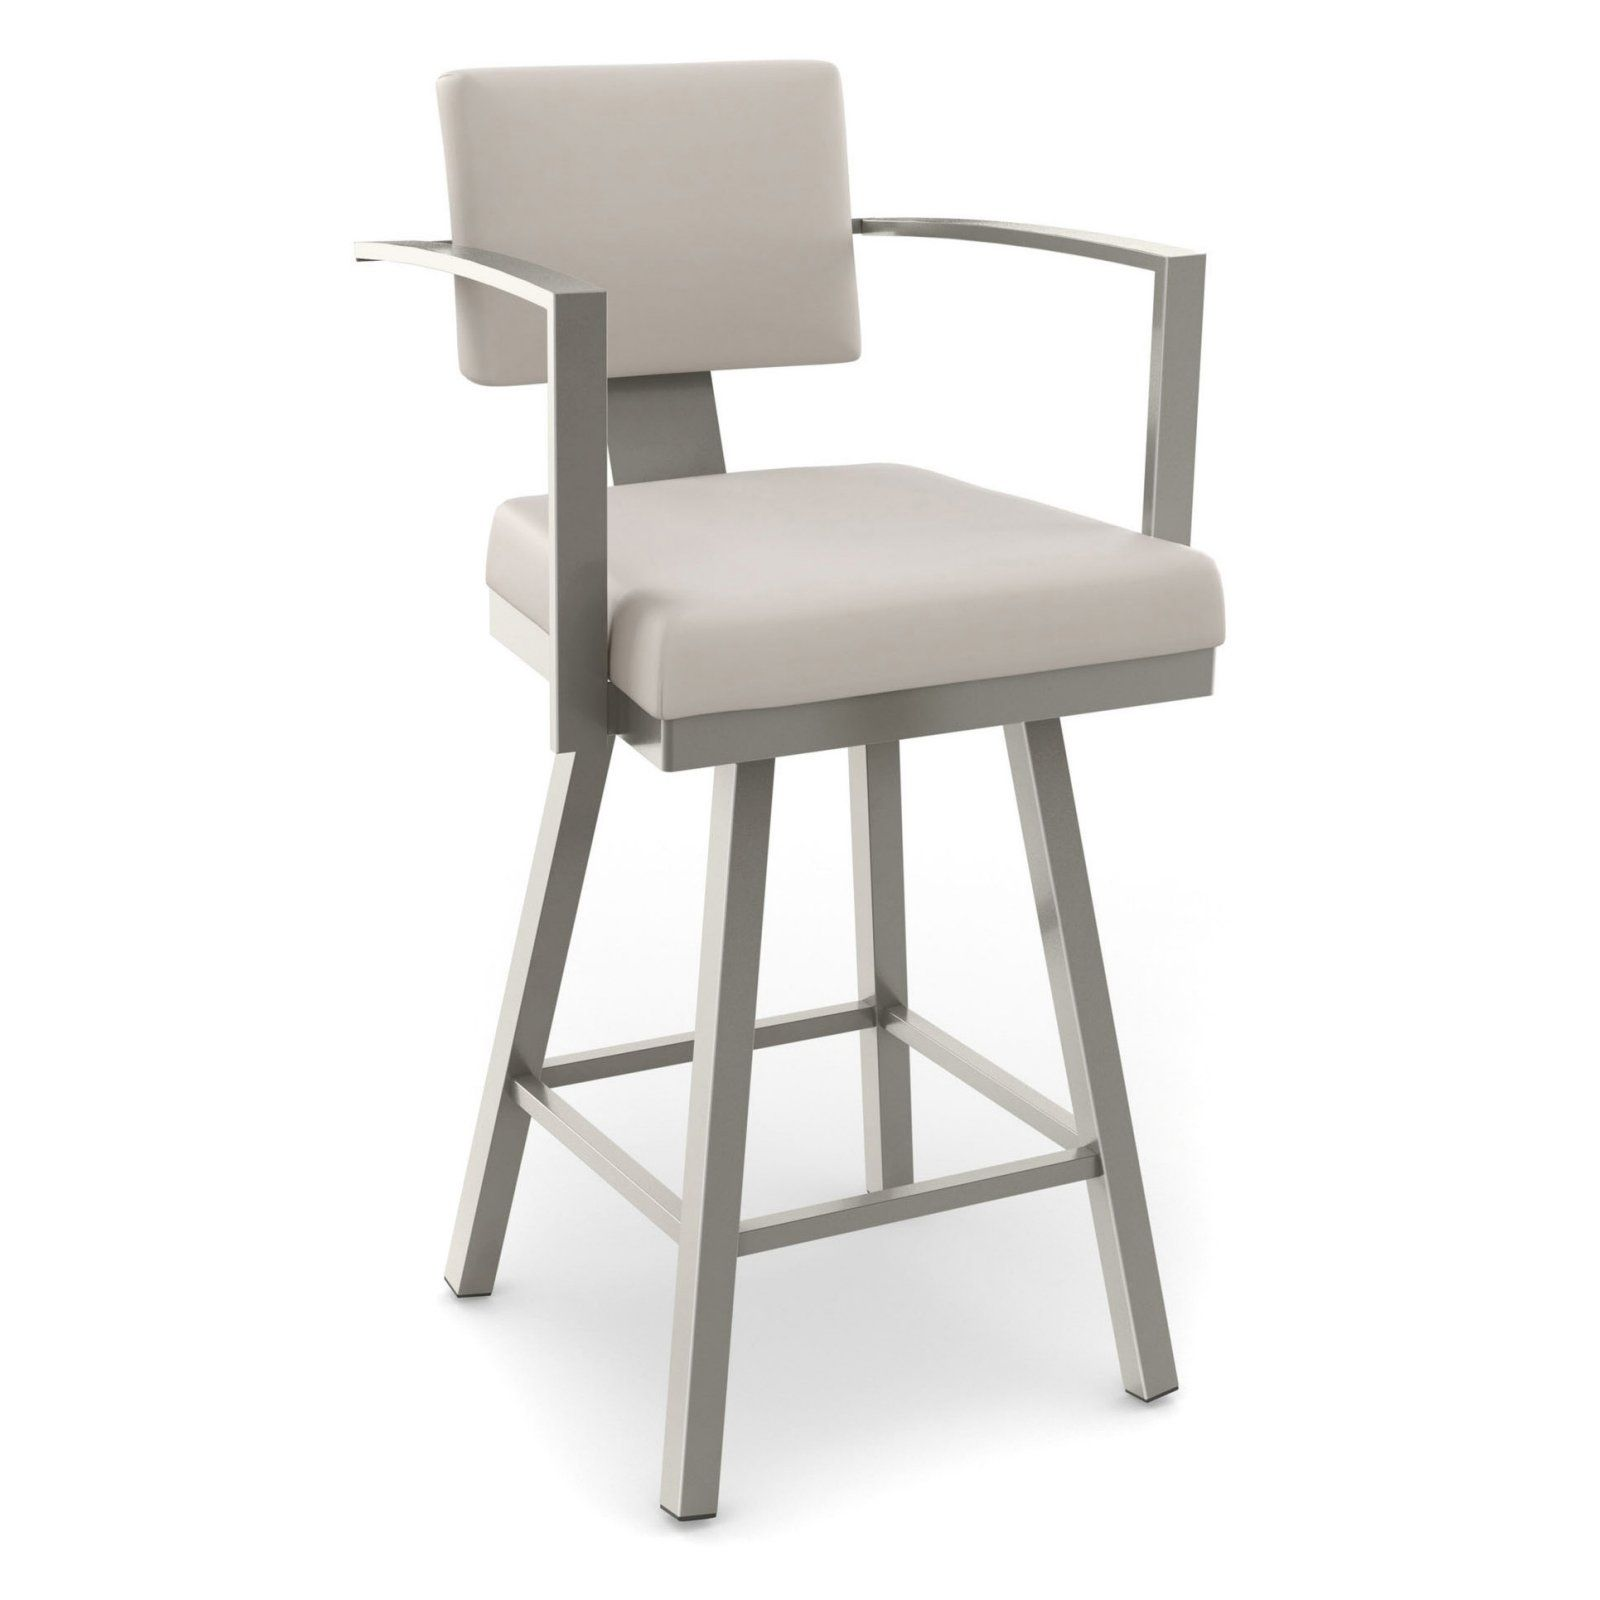 Amisco Akers Swivel Bar Stool With Arms 30 In Sillas Muebles Banquetas